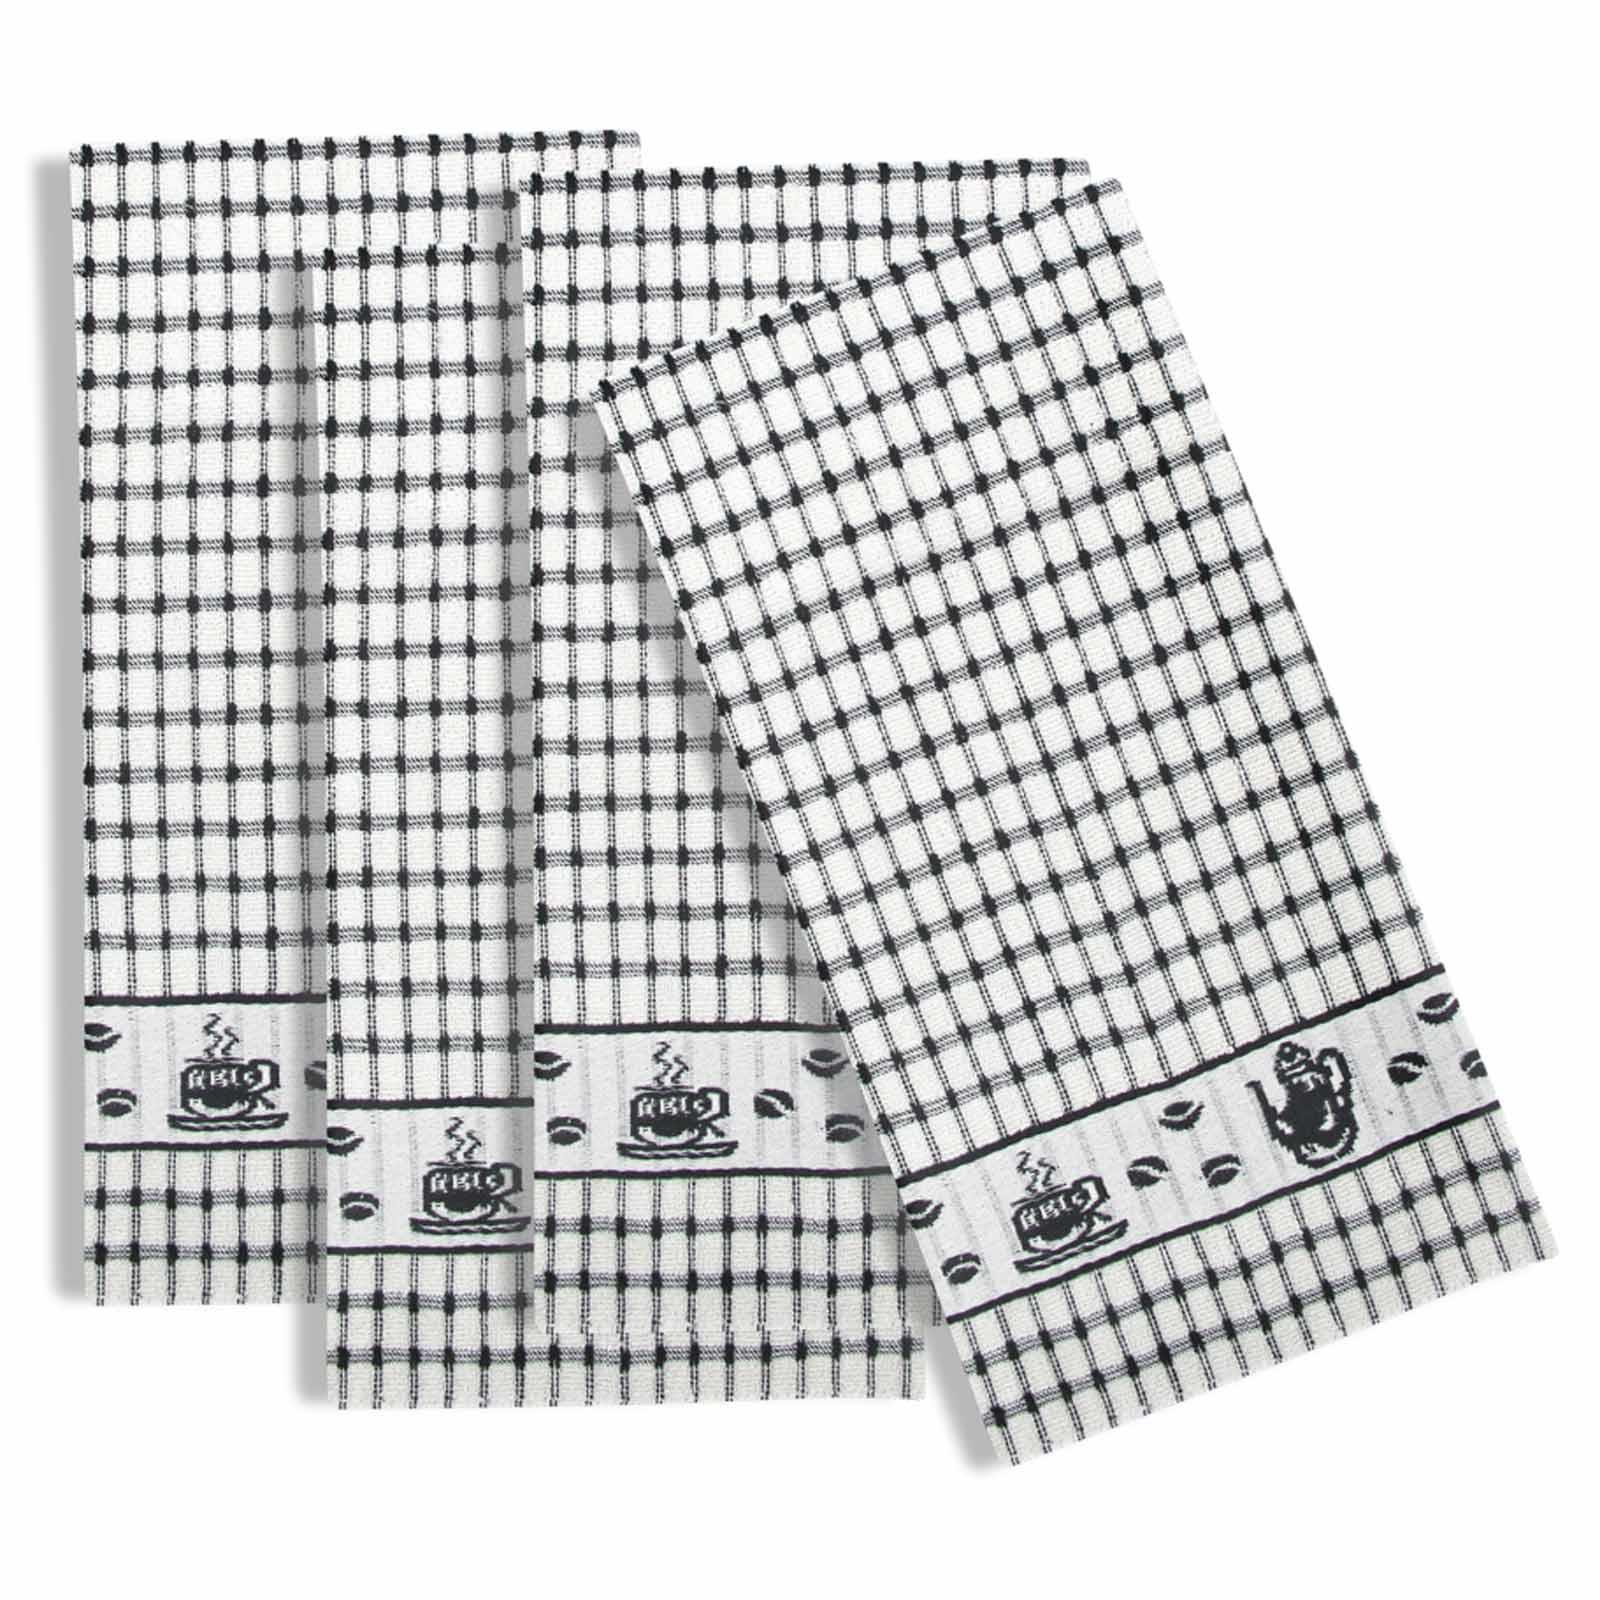 Packs-of-2-4-6-12-Tea-Towels-100-Cotton-Terry-Kitchen-Dish-Drying-Towel-Sets thumbnail 72